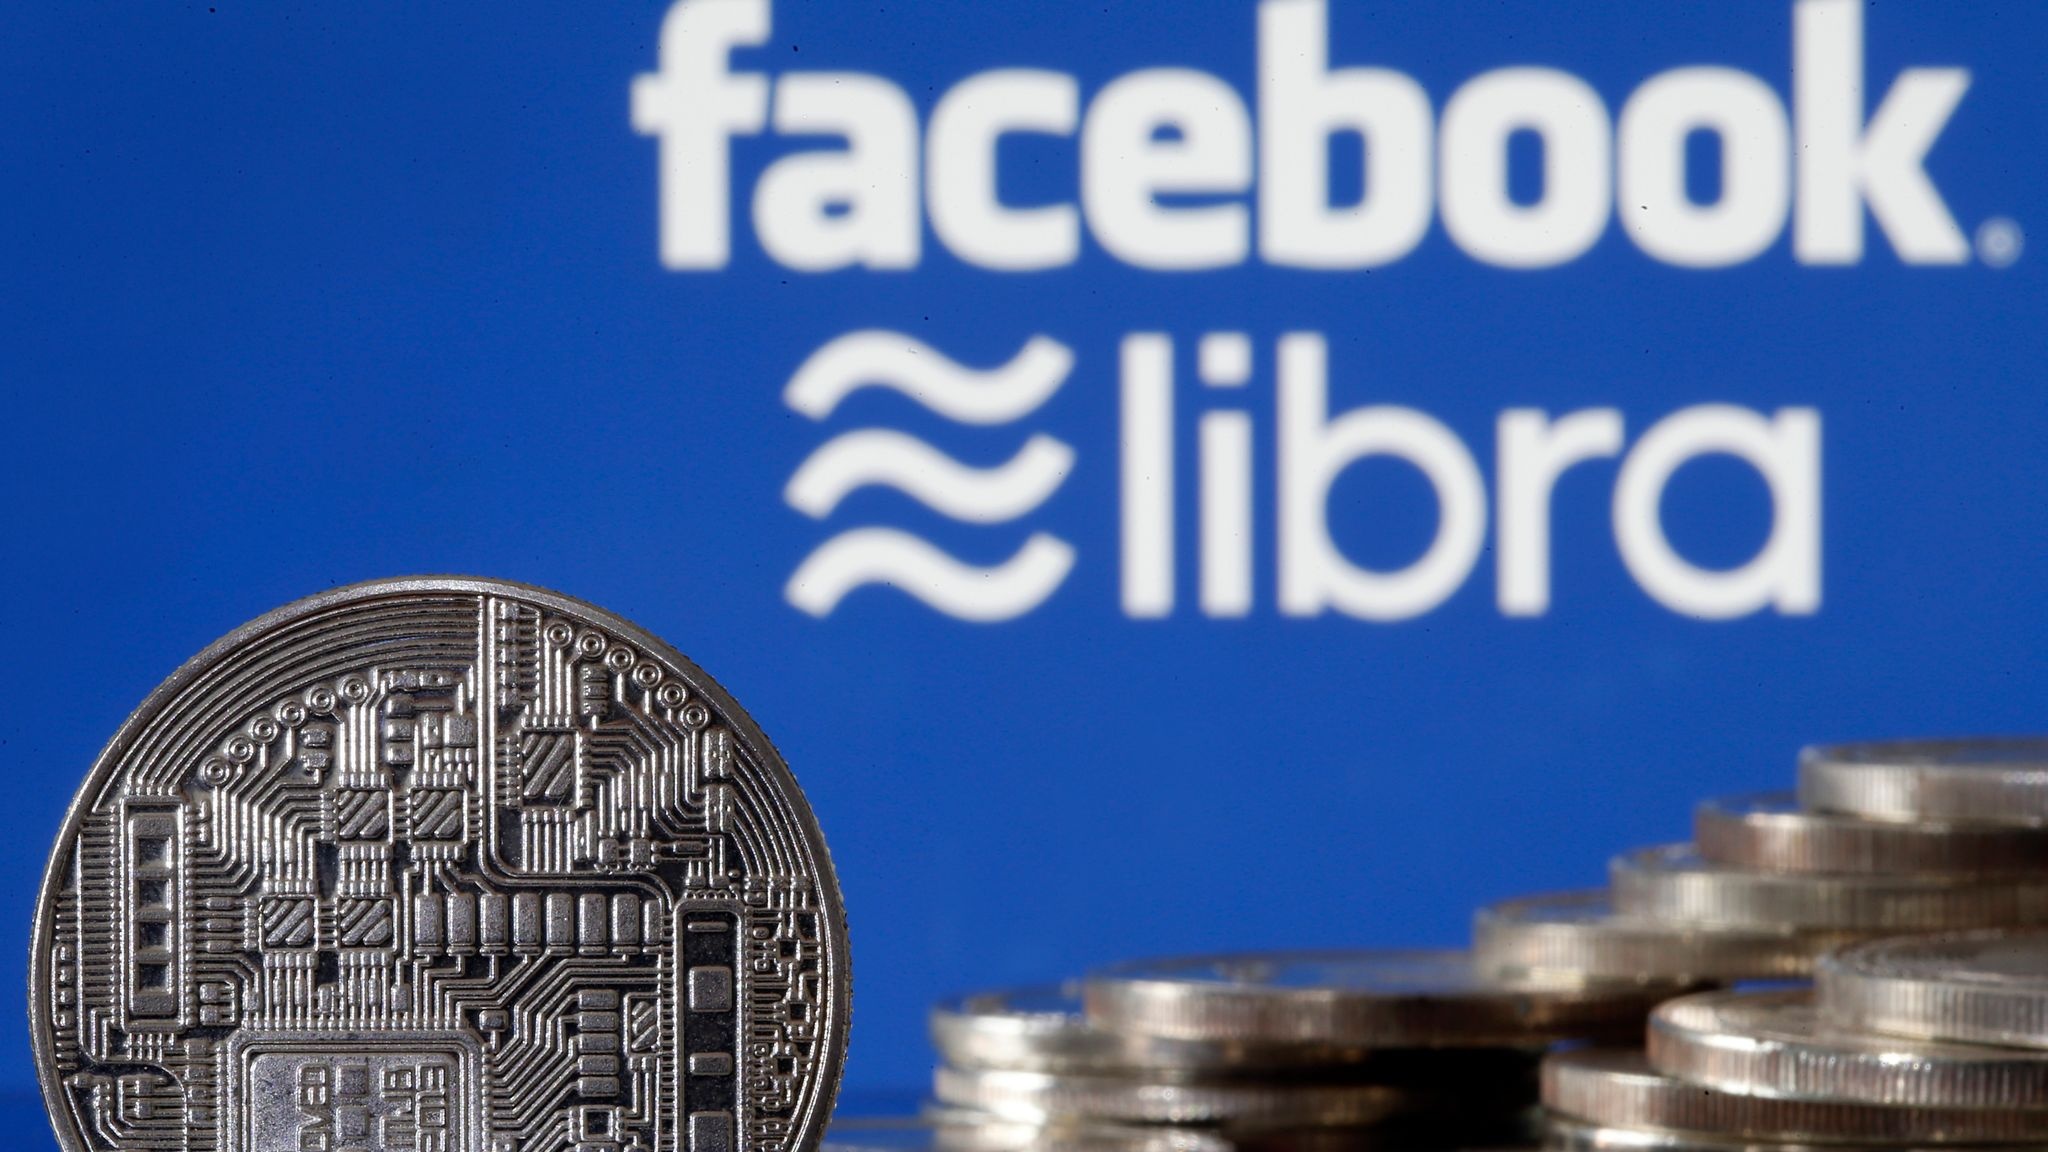 Bank of England fires warning to Facebook on Libra cryptocurrency